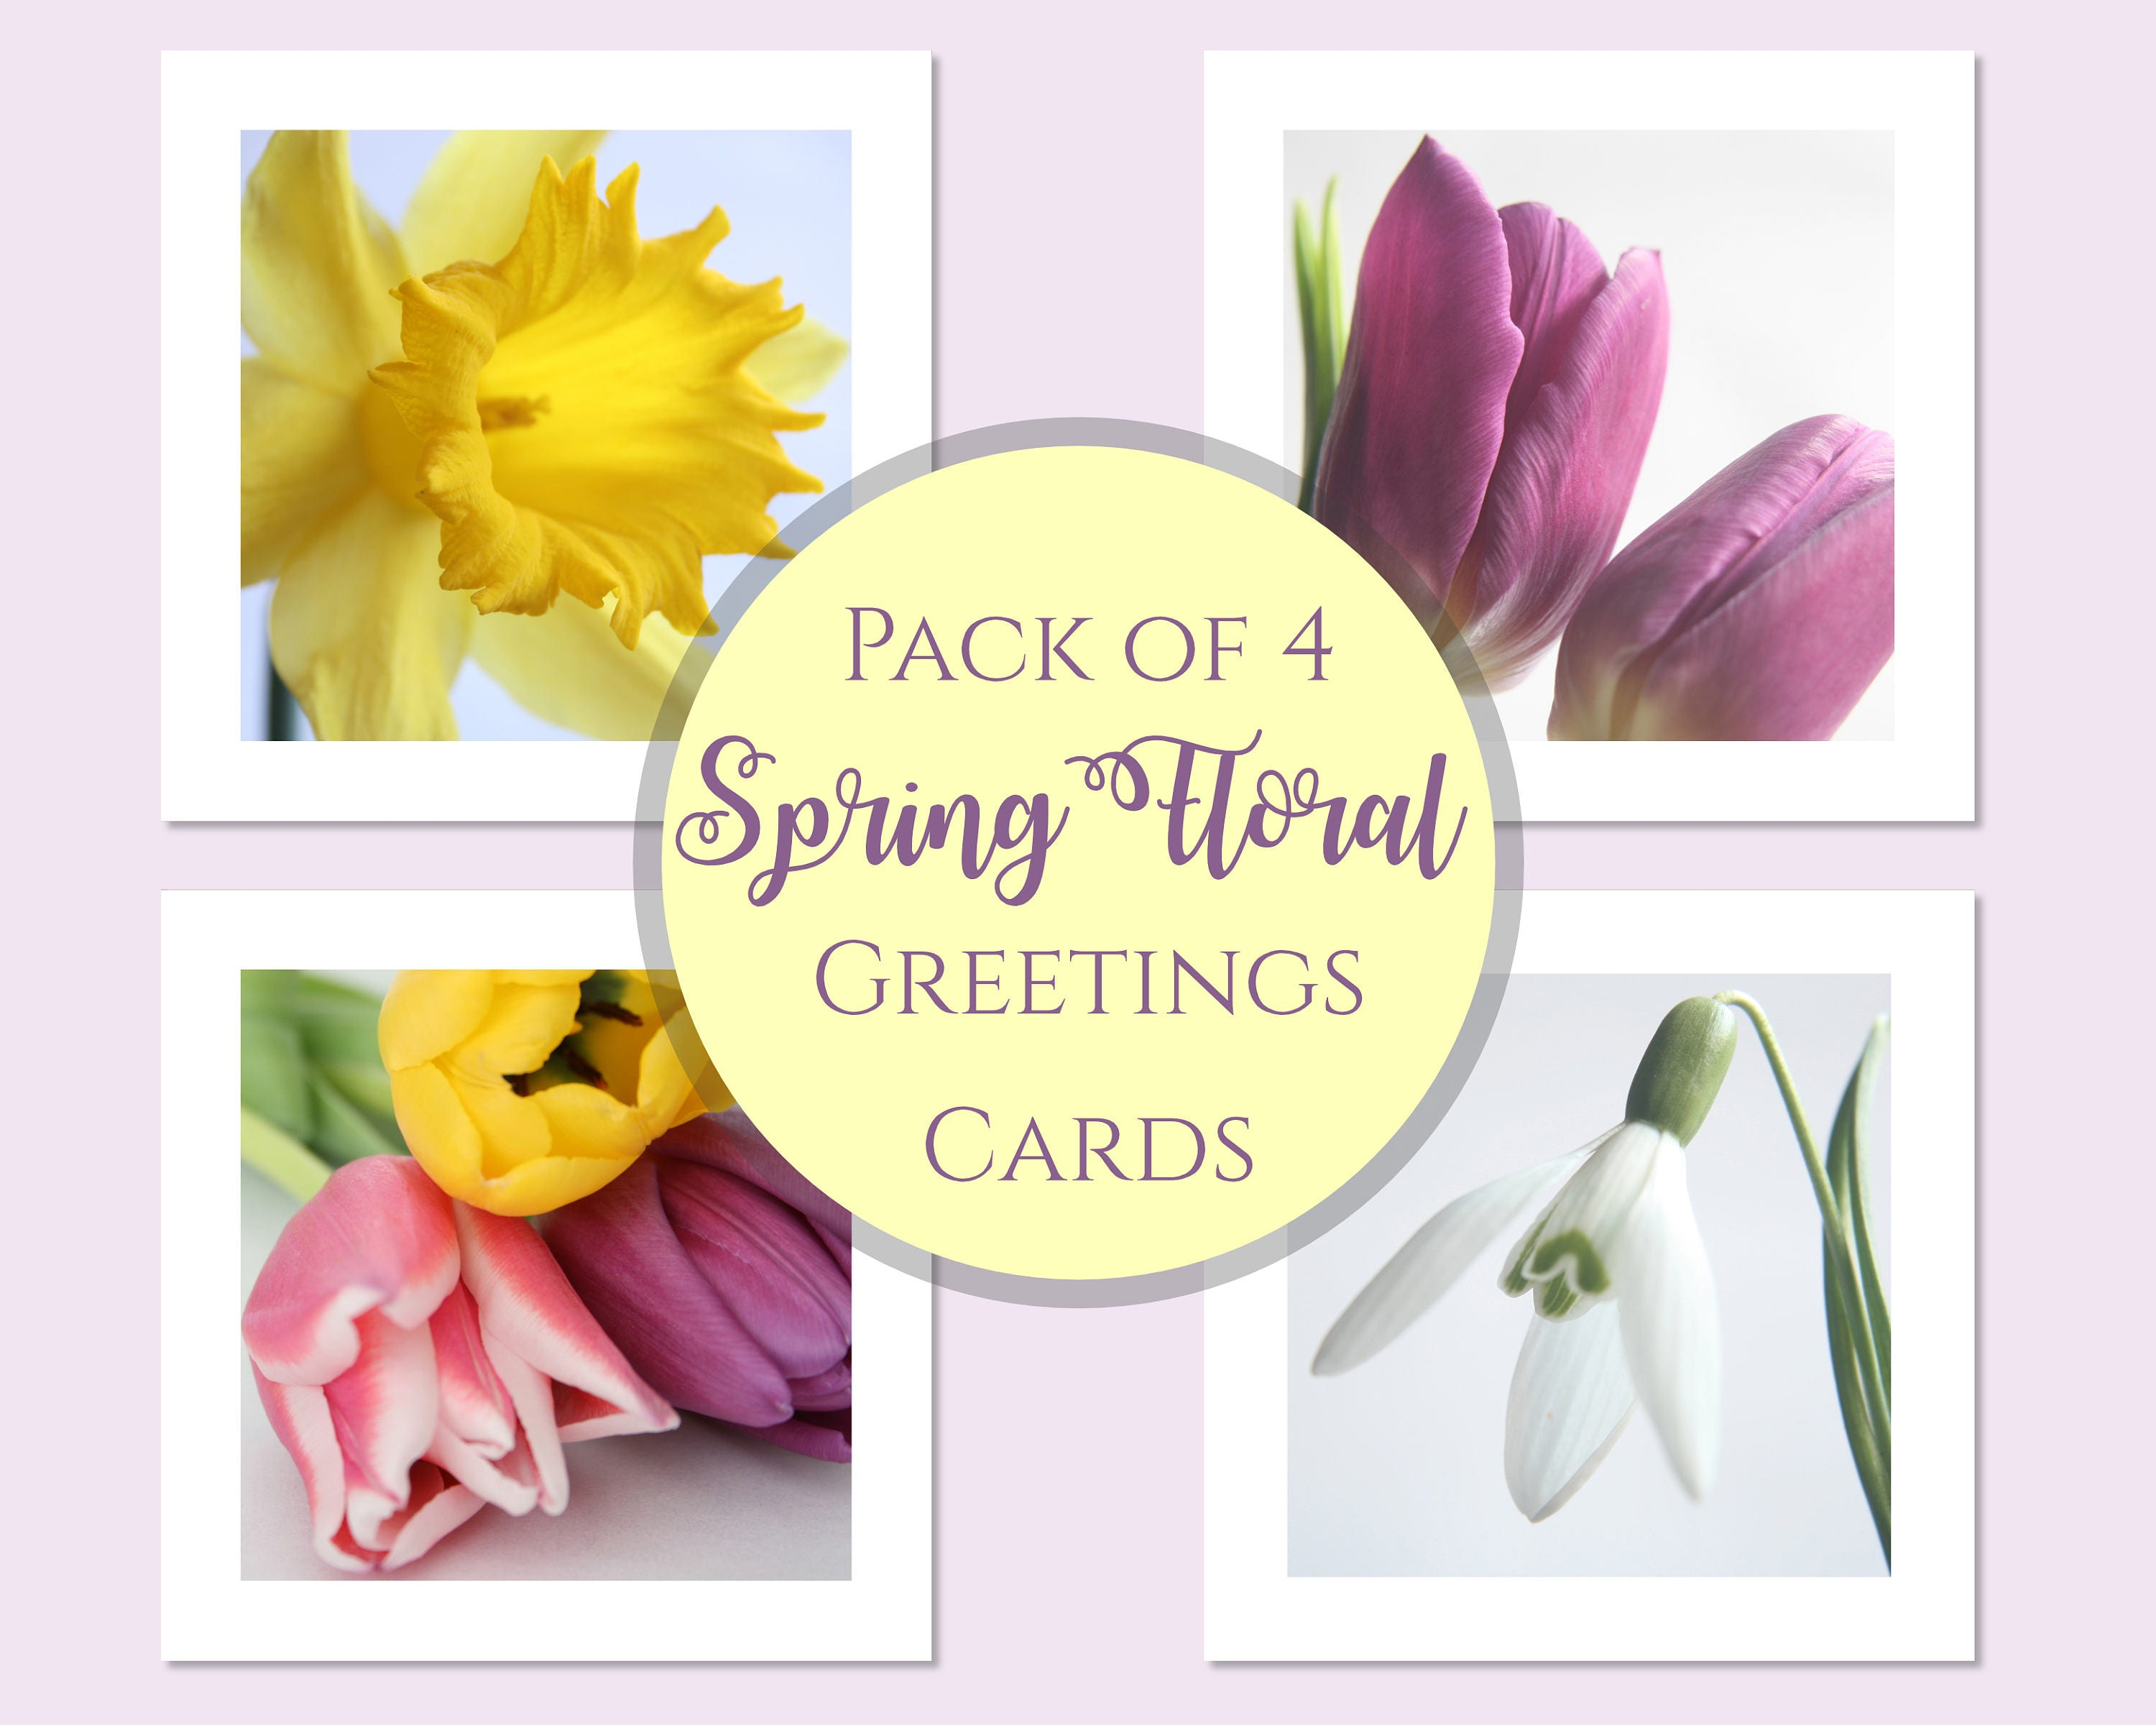 Pack Of 4 Floral Spring Easter Greetings Cards